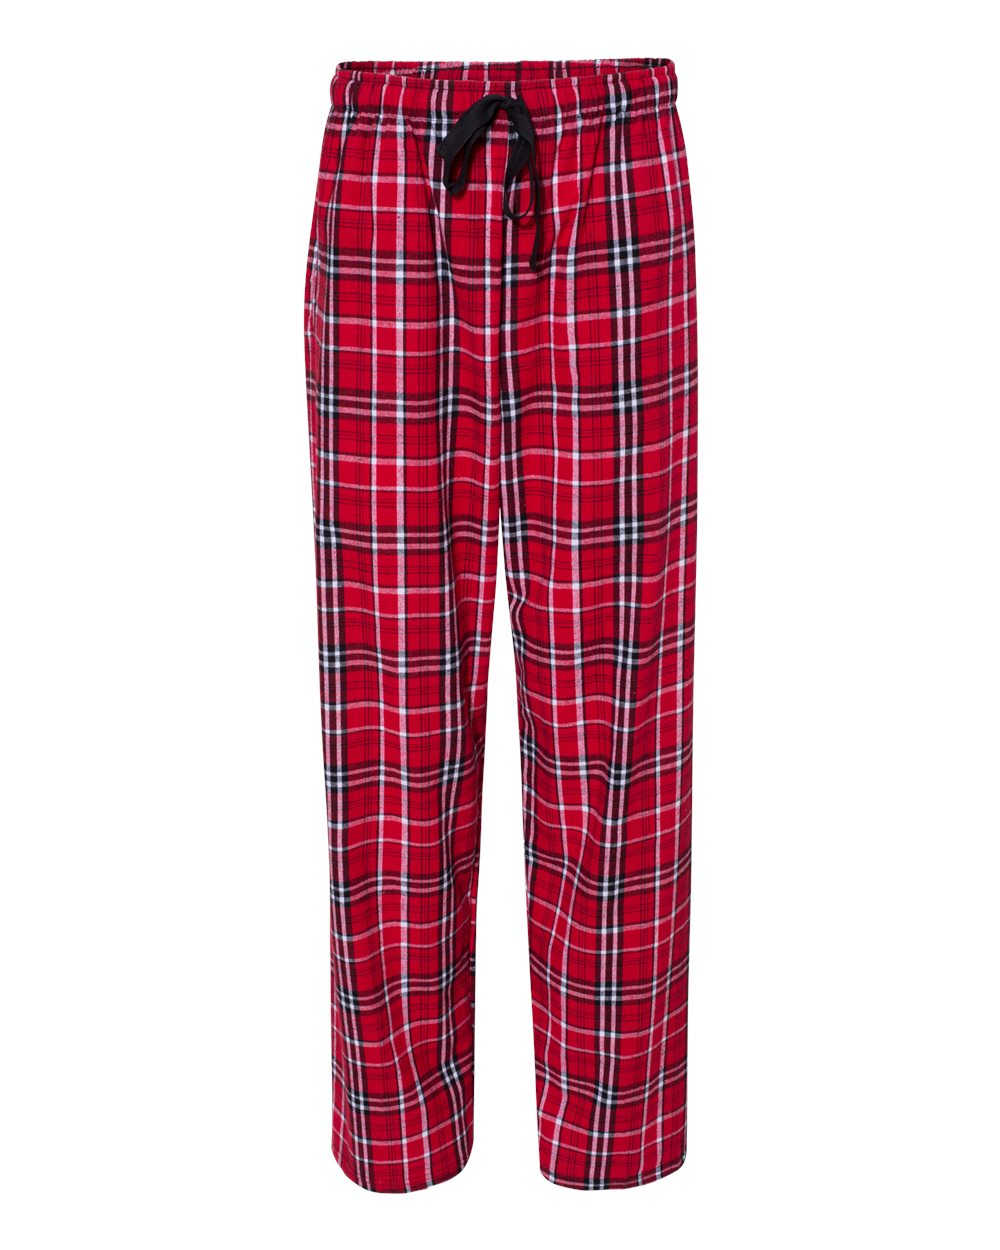 Boxercraft-Unisex-Flannel-Pants-With-Pockets-Pajama-Pants-F20-up-to-2XL thumbnail 42